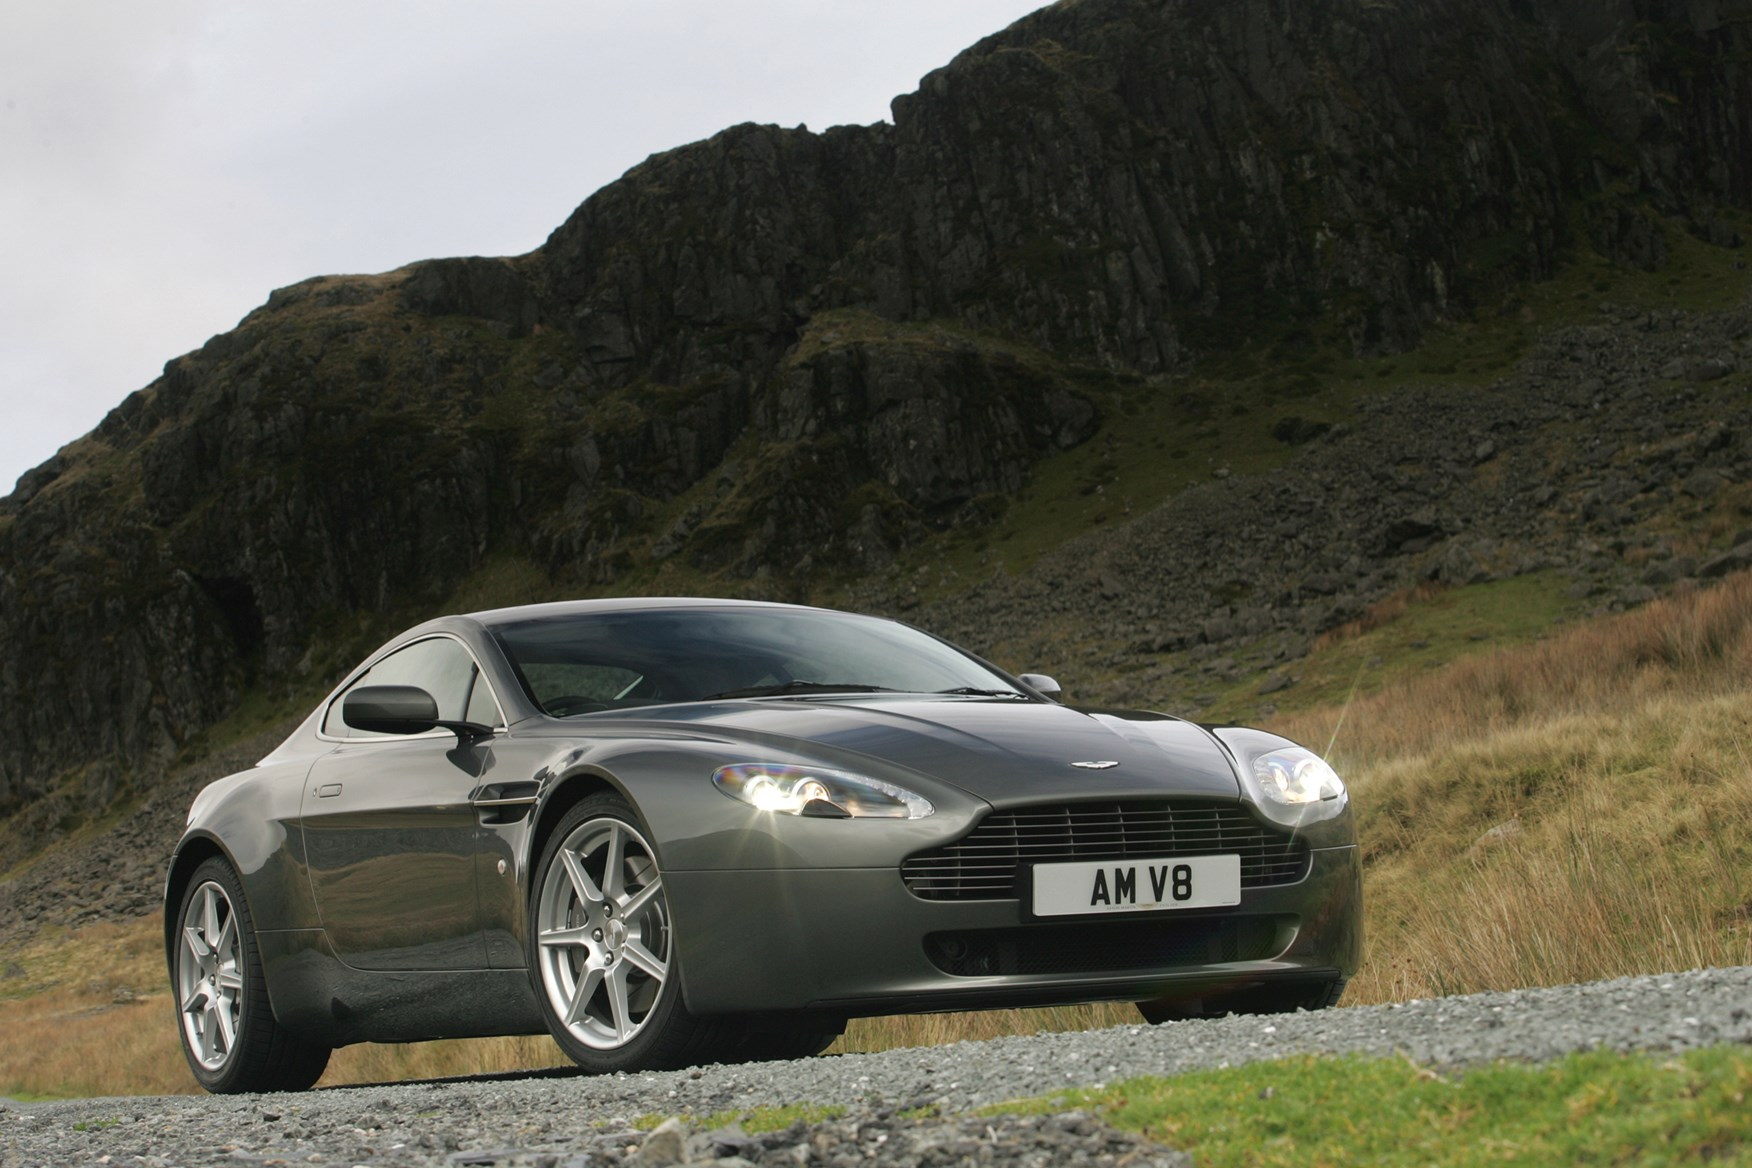 aston martin vantage coupe review 2005 2018 parkers. Black Bedroom Furniture Sets. Home Design Ideas